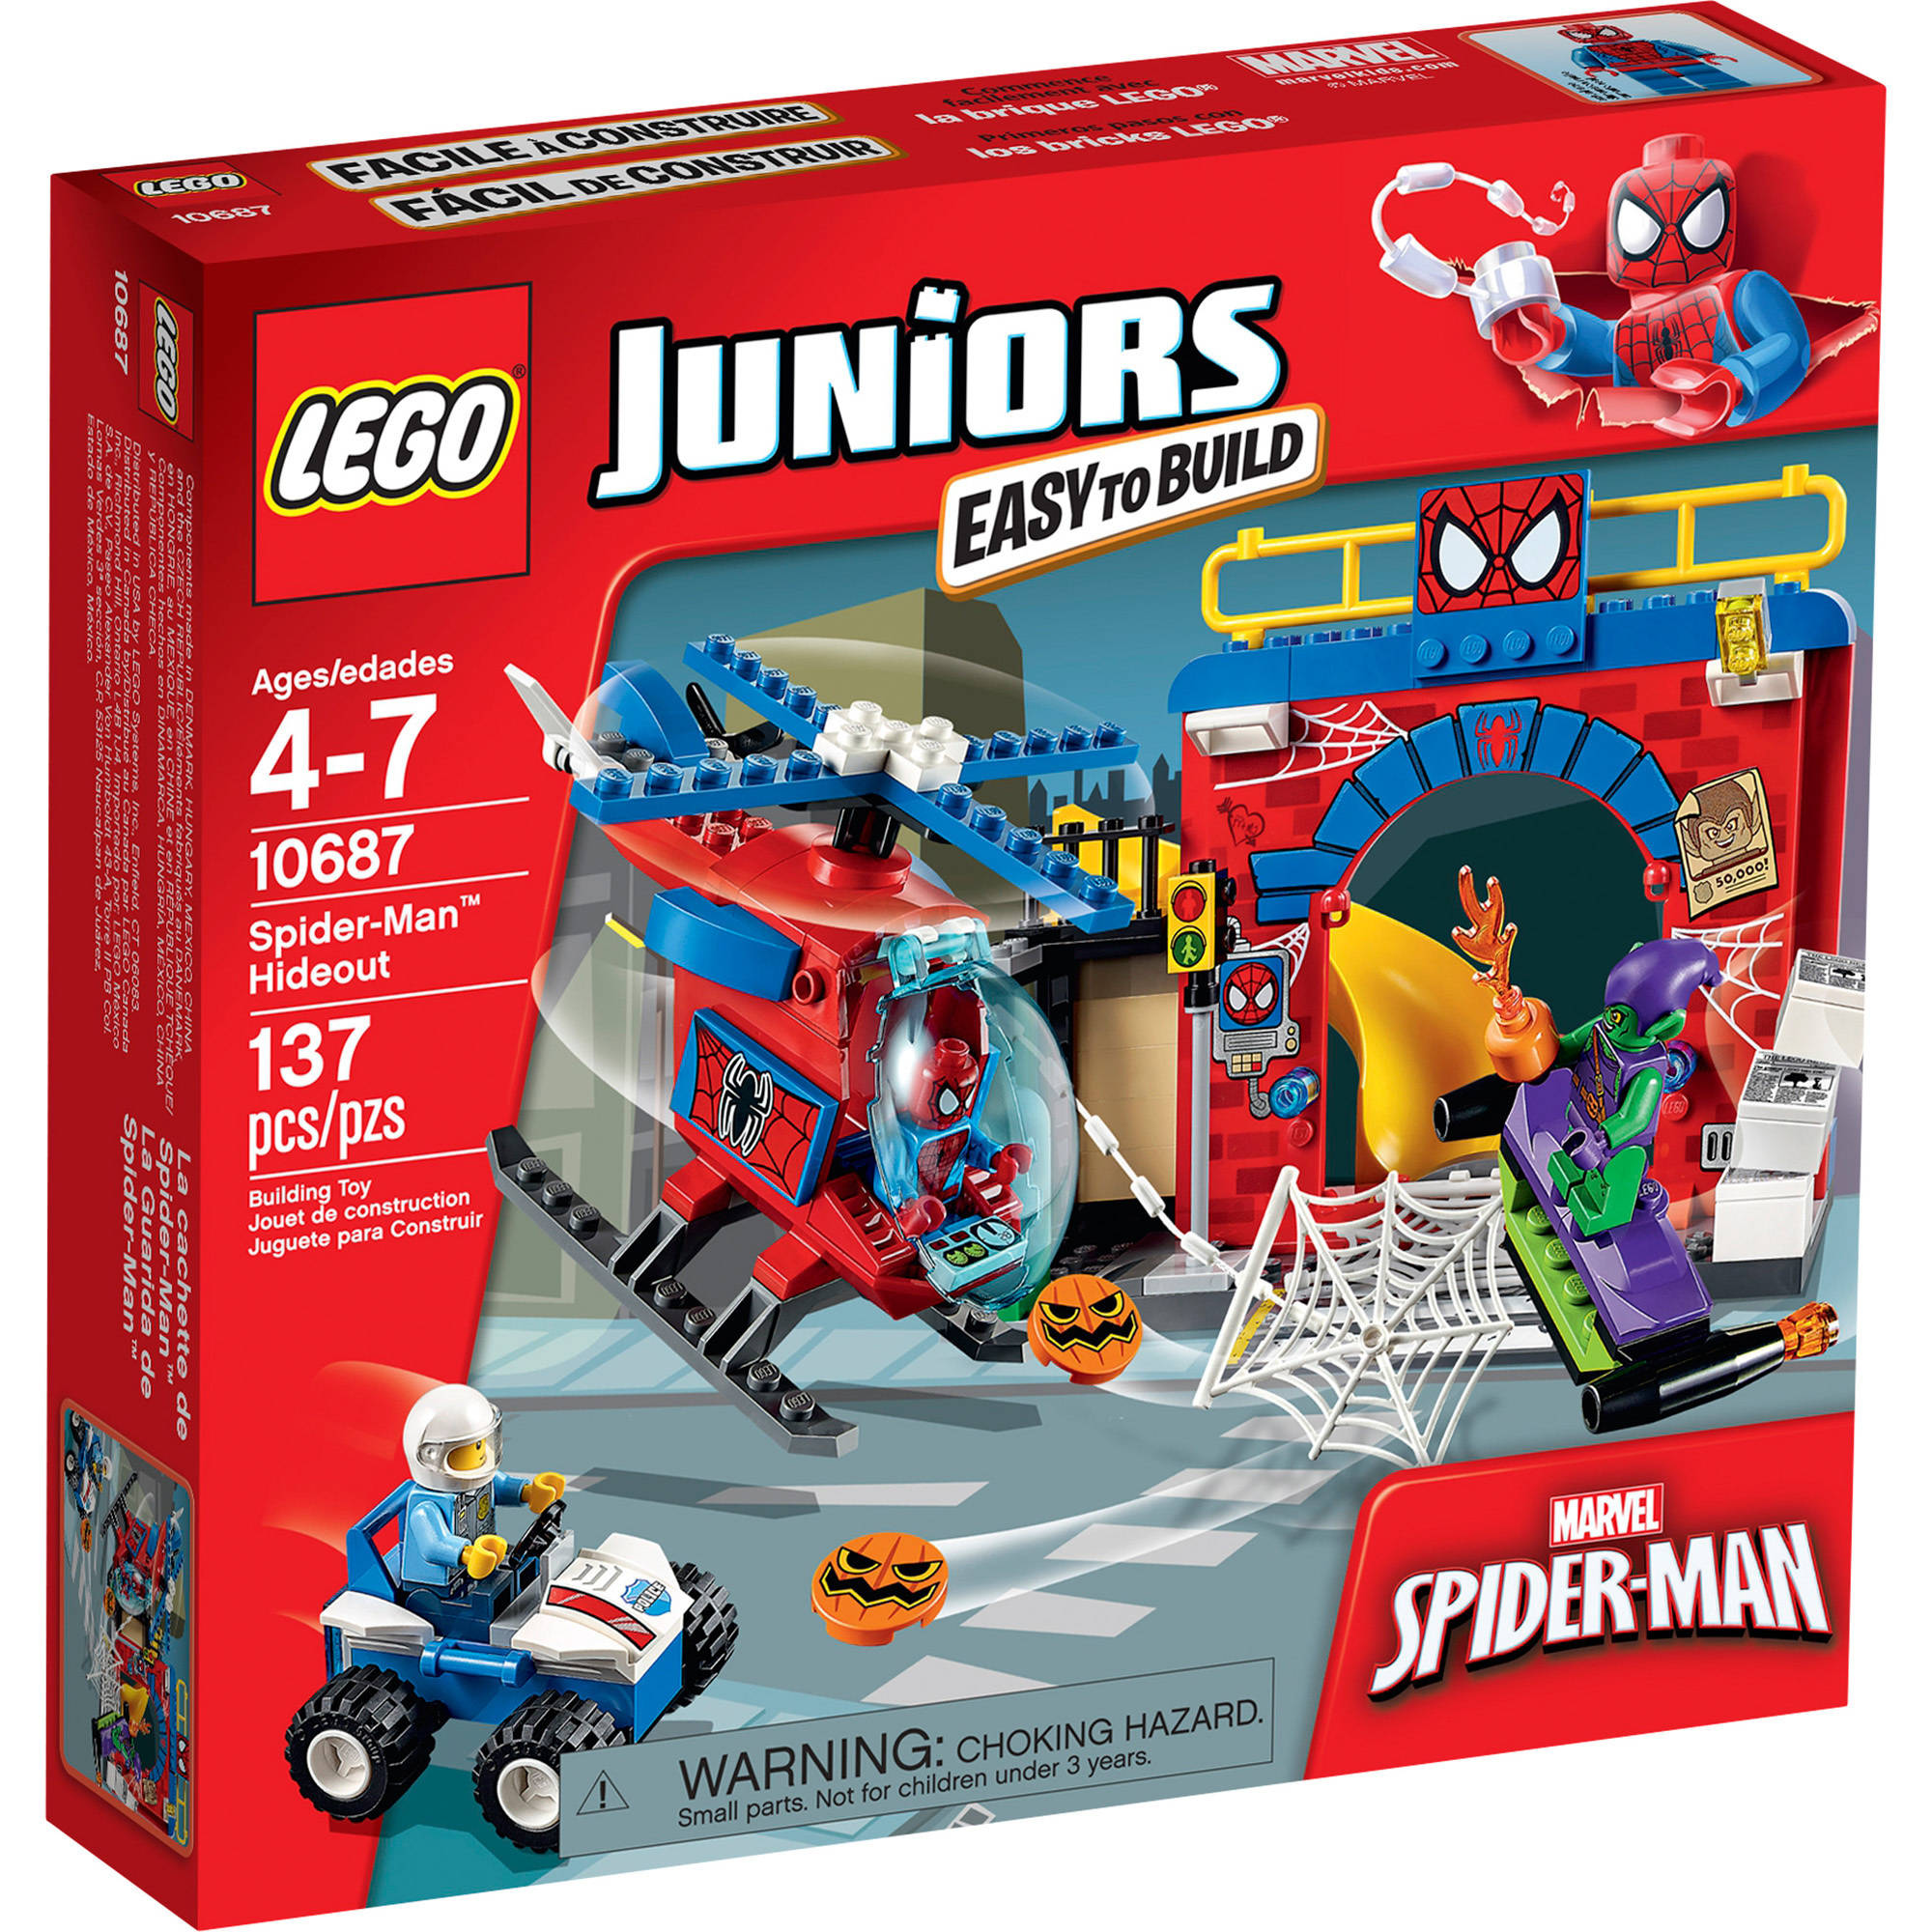 LEGO Juniors Spider-Man Hideout, 10687